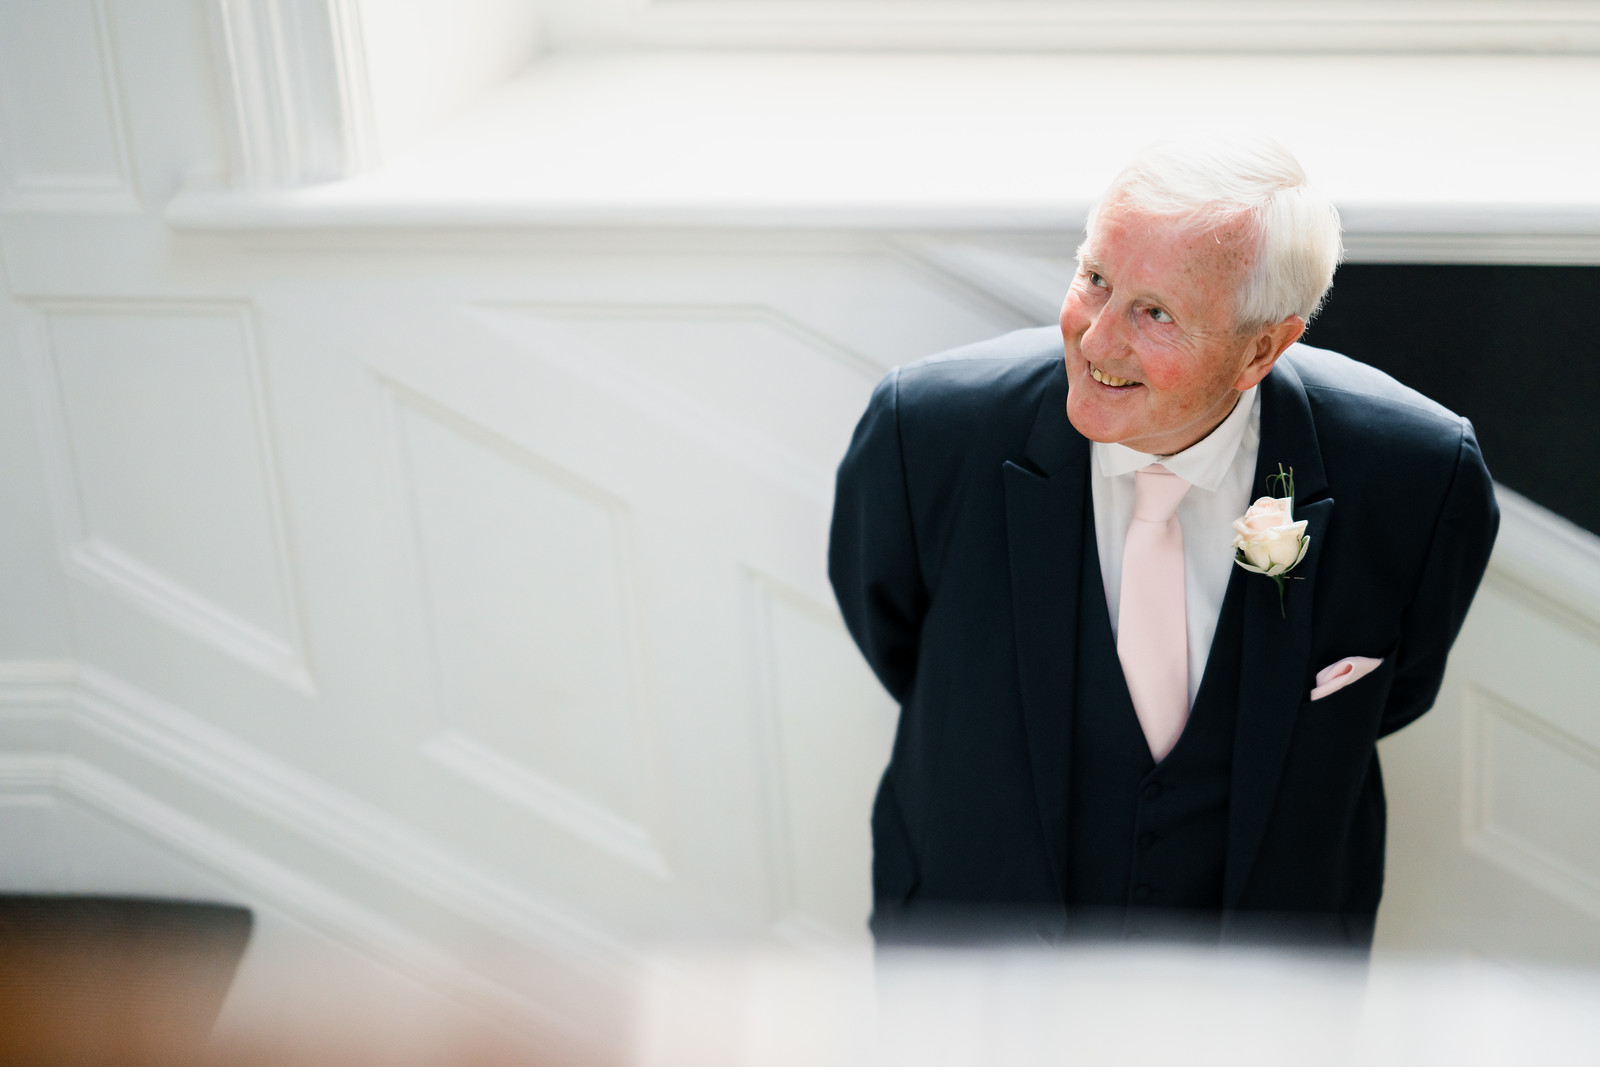 Brides fathers reaction to seeing her wedding dress- full of smiles